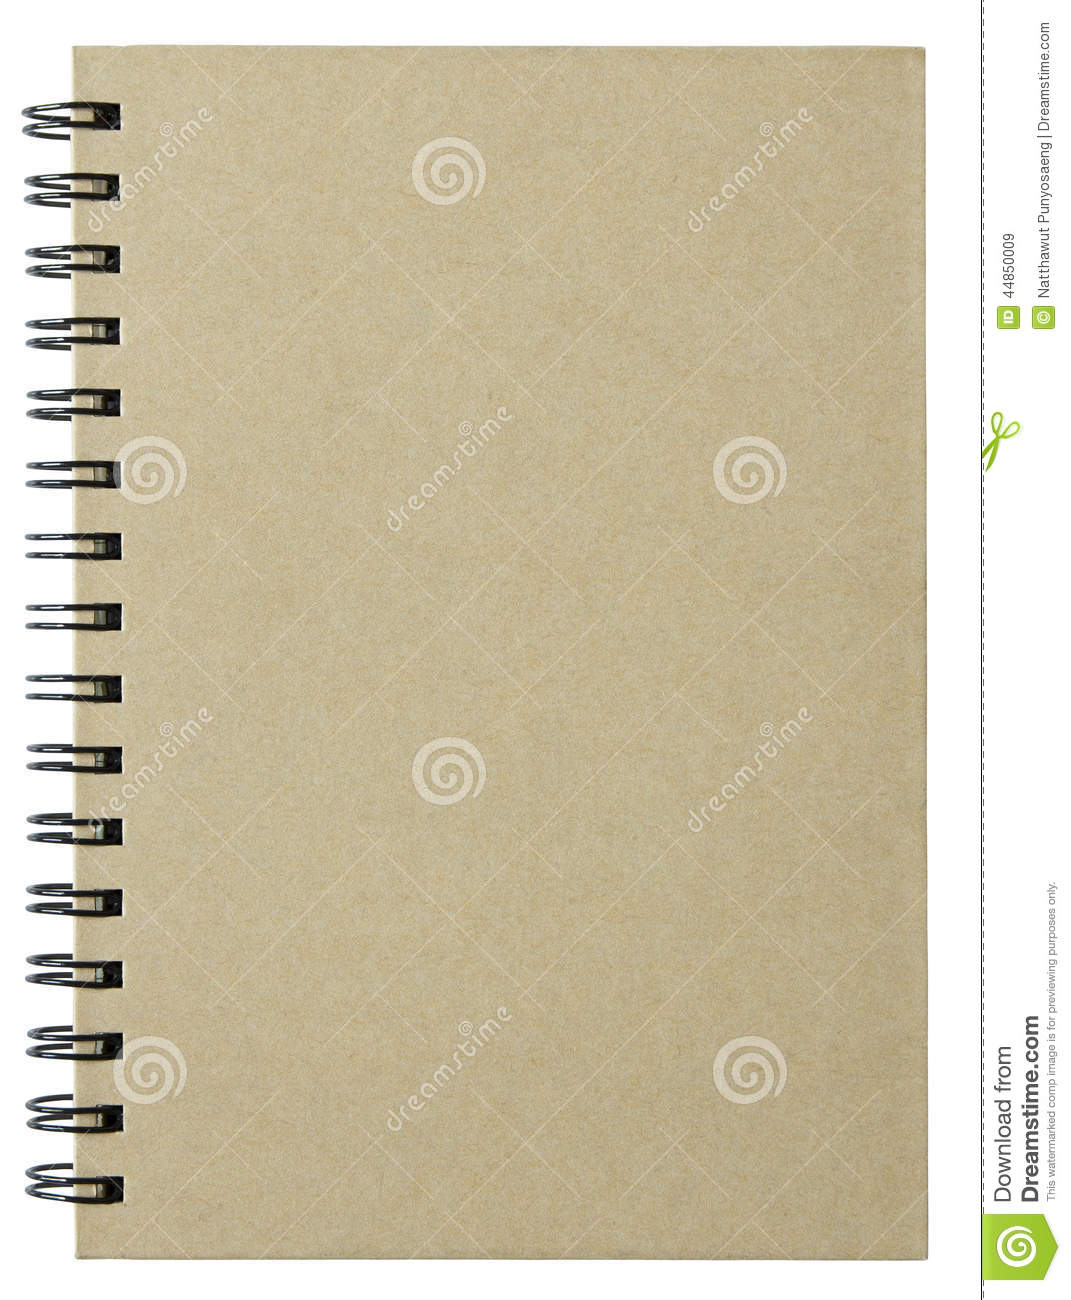 Notebook Cover Background : Blank notebook cover isolated on white stock photo image